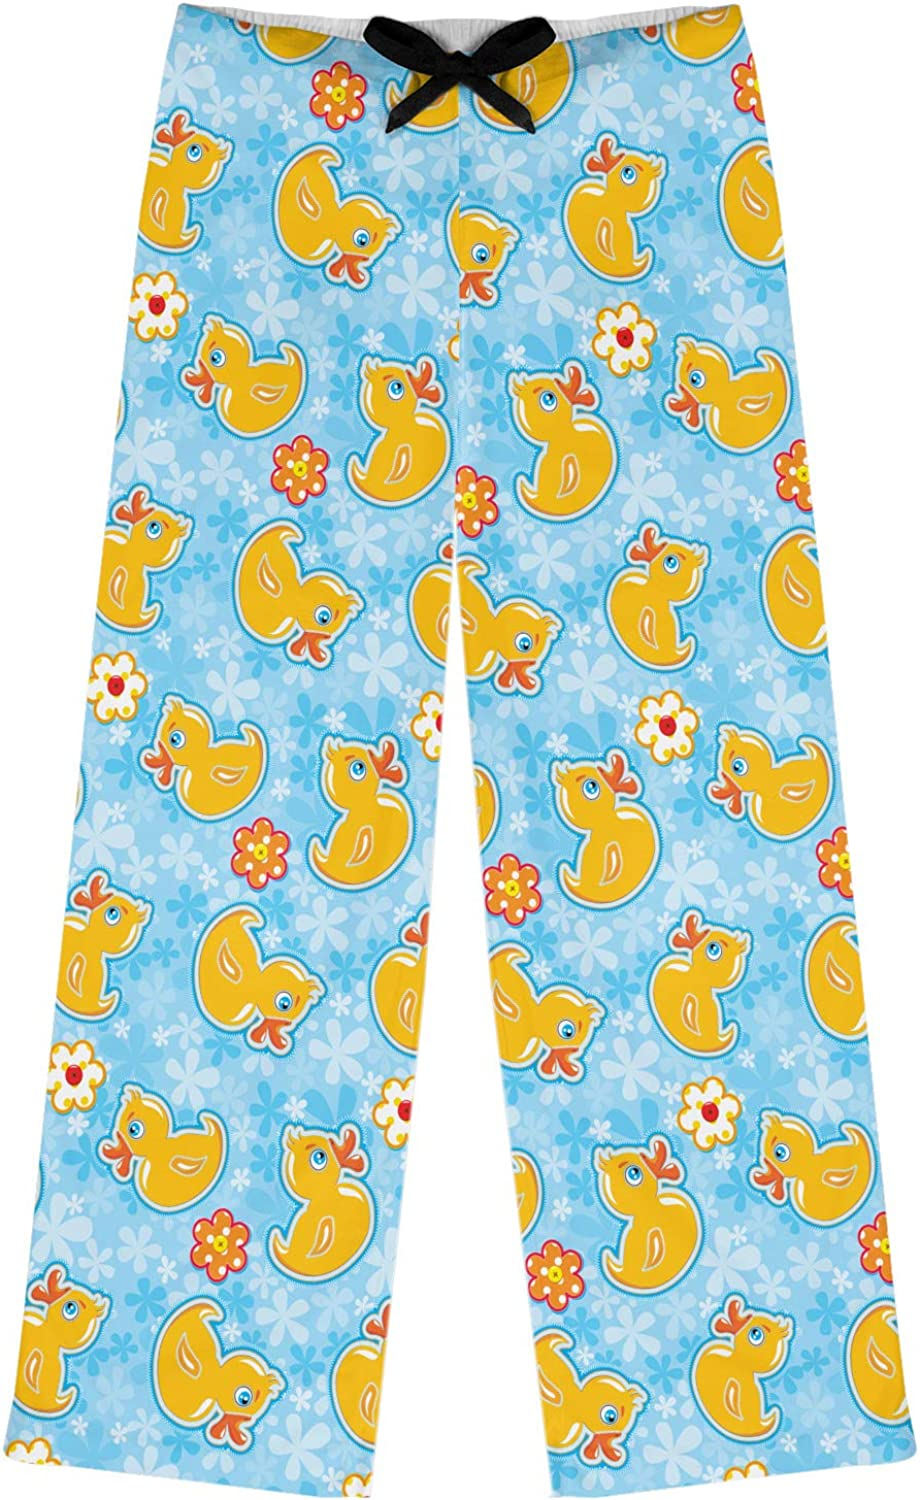 M Personalized RNK Shops Roses Womens Pajama Pants